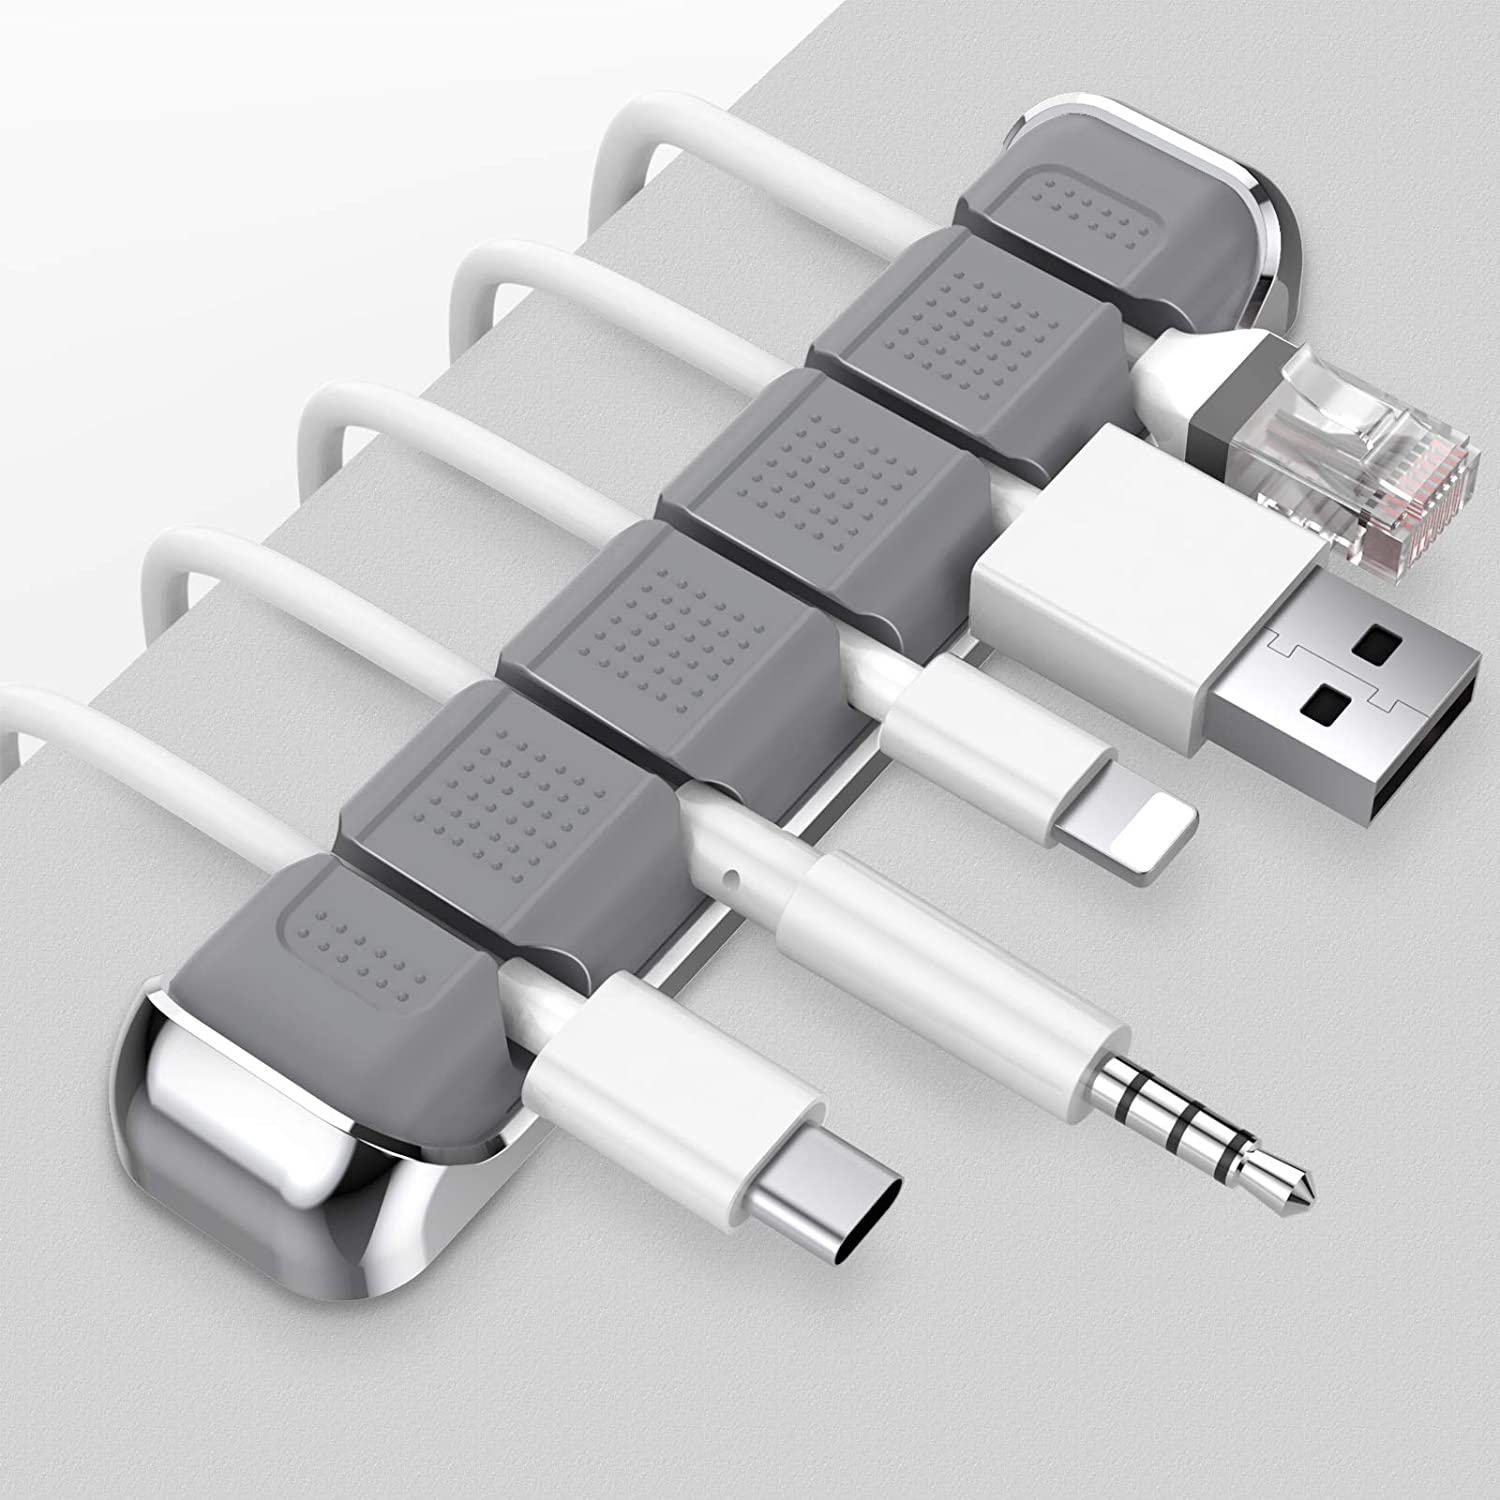 AhaStyle 5 Solts Cable Organizer Holder Metal Frame Desktop Cord Wire Clips Keeper for Organizing TypeC USB Cable//Power Cord//Wire Home Office and Car Grey